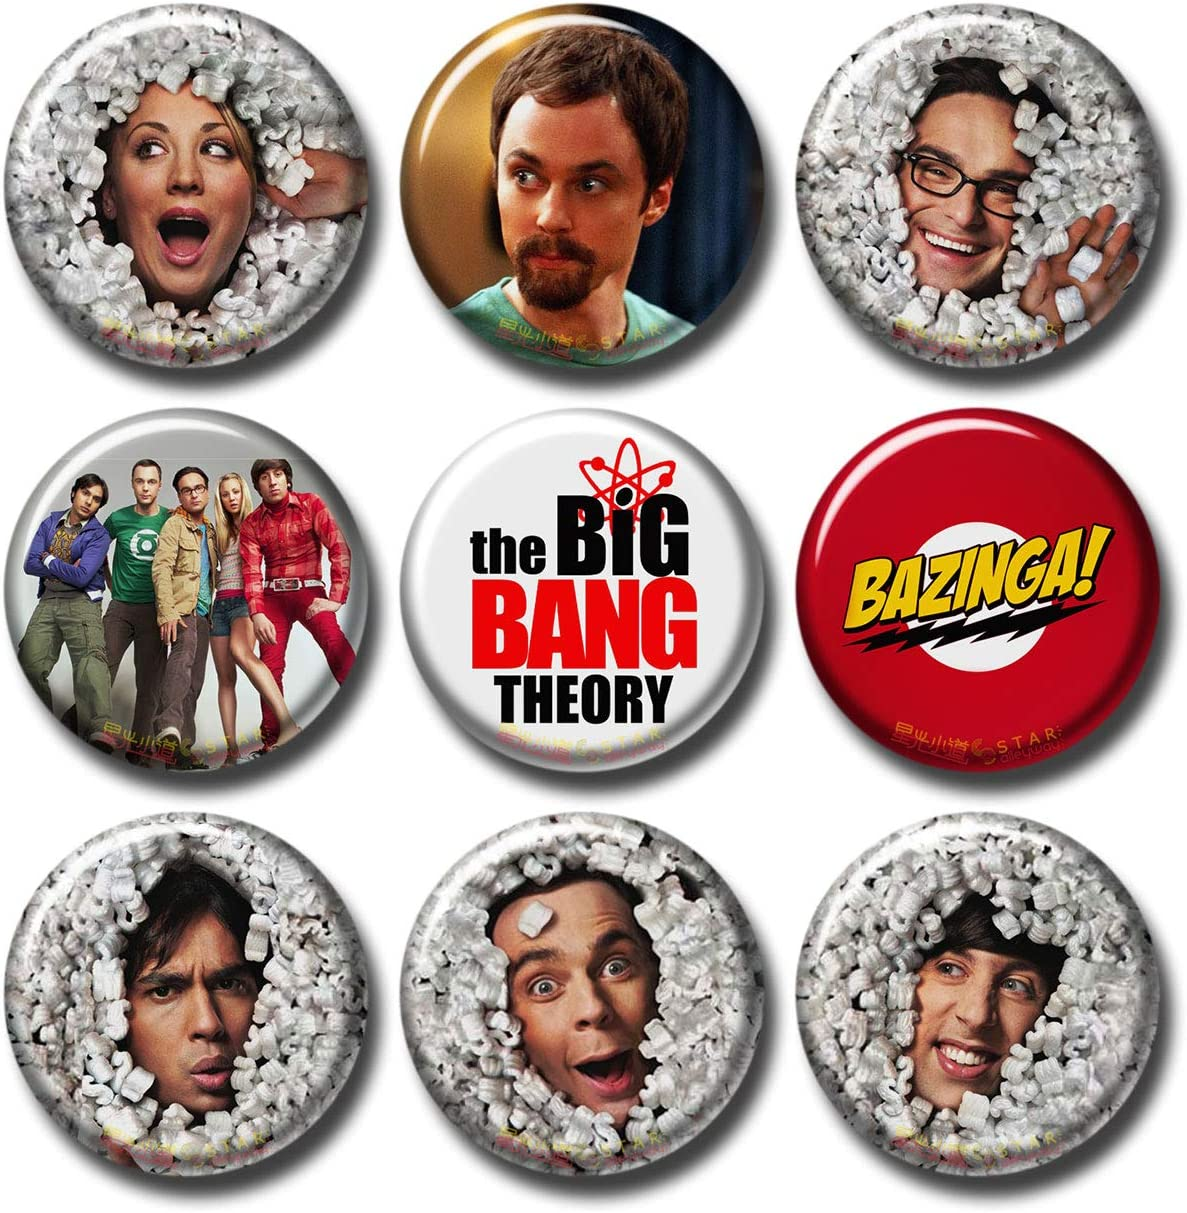 The Big Bang Theory 9 pcs Button Fridge Magnets Set Pack TV Series 045-P005 Cast Kaley Cuoco Jim Parsons Sheldon Logos,Party Favors Supplies Gifts Home Decor (Round 1.5 inch|3.7cm)